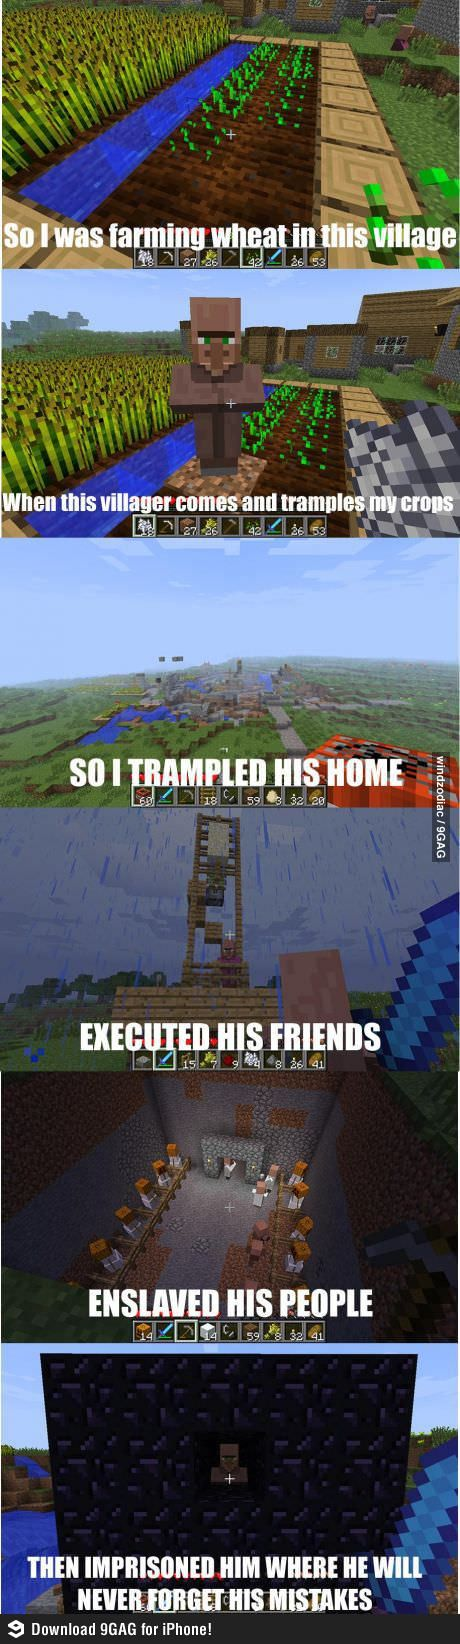 For some reason, you can do this on MINECRAFT and not feel guilty at all.